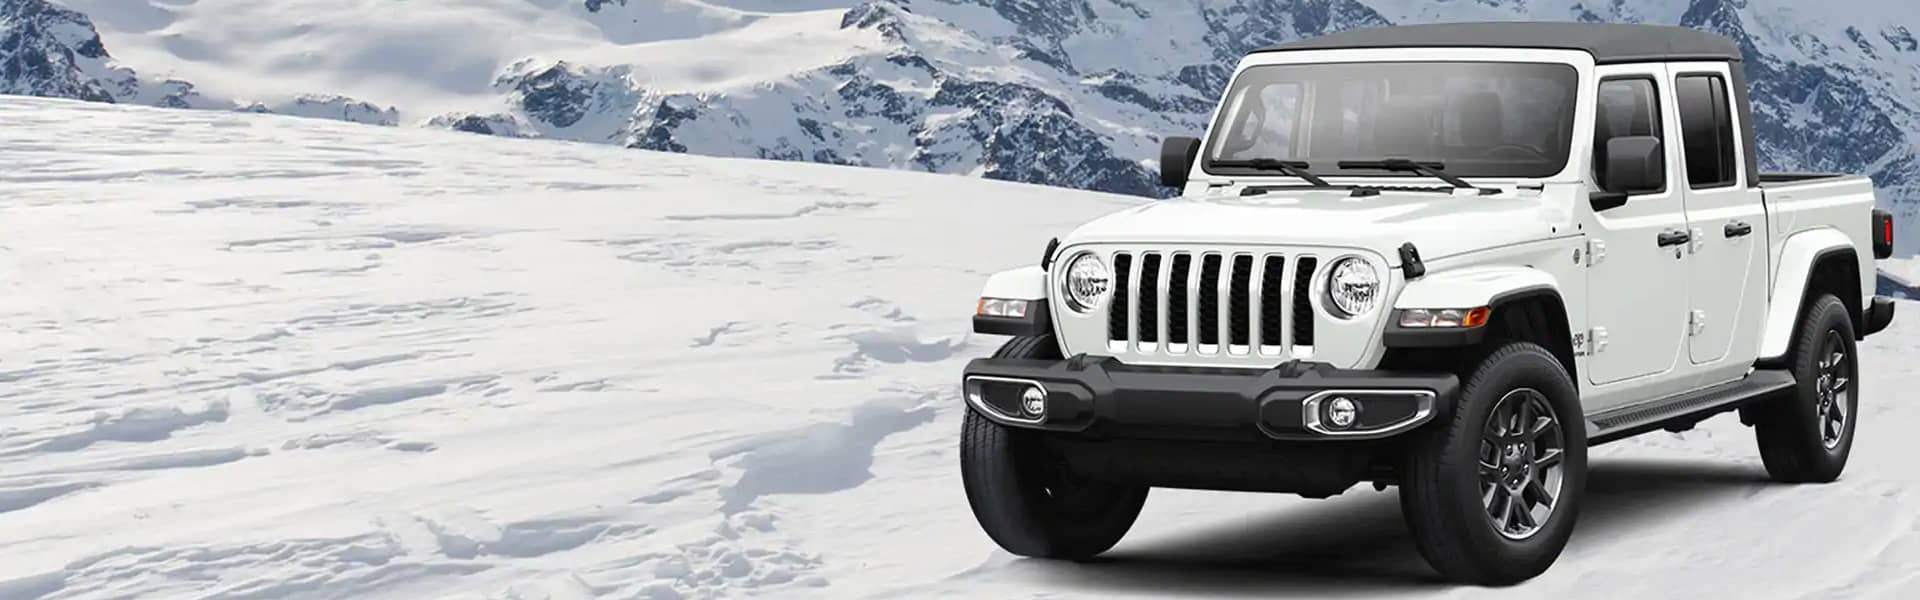 Discover Jeep Vehicles | Premier Clearance Center Westbank